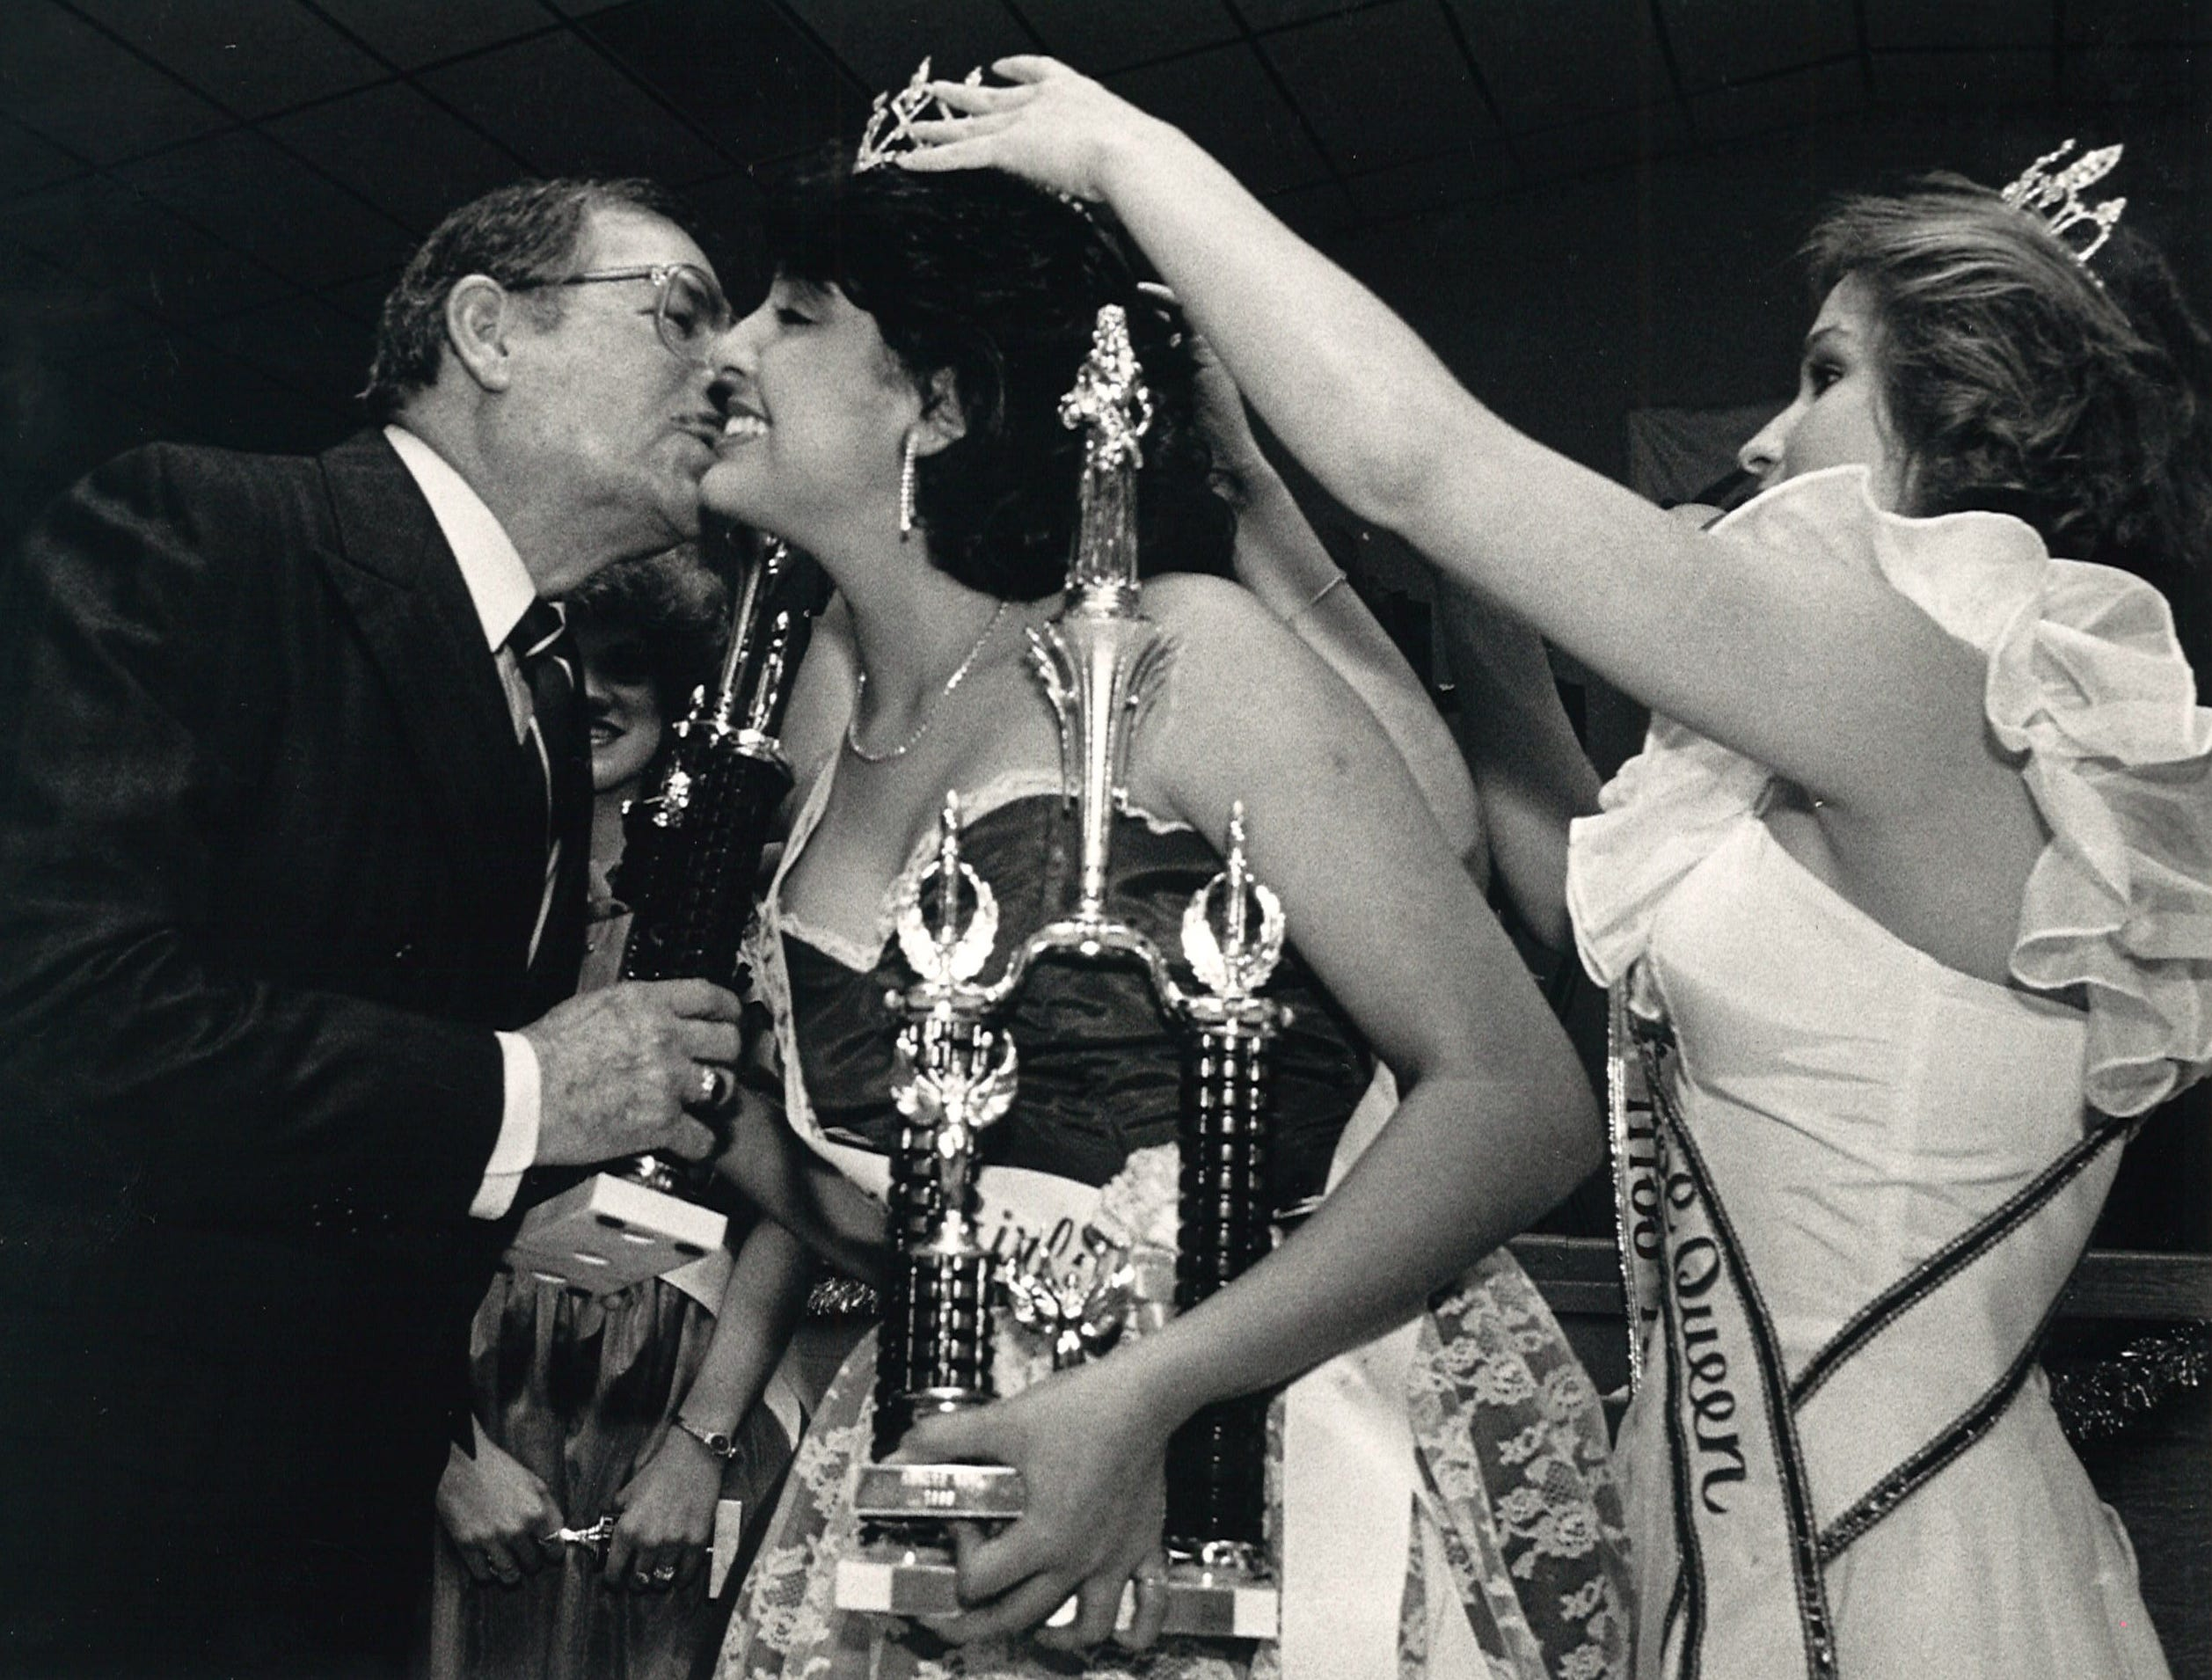 Ray High School student, Merida May Mendoza, was crowned Menudo Bowl Queen at the Stardust Ballroom on Jan. 25, 1985. She received a trophy and a kiss from presenter Art Garcia as the 1984 queen Evelyn Farias assisted with her crown.